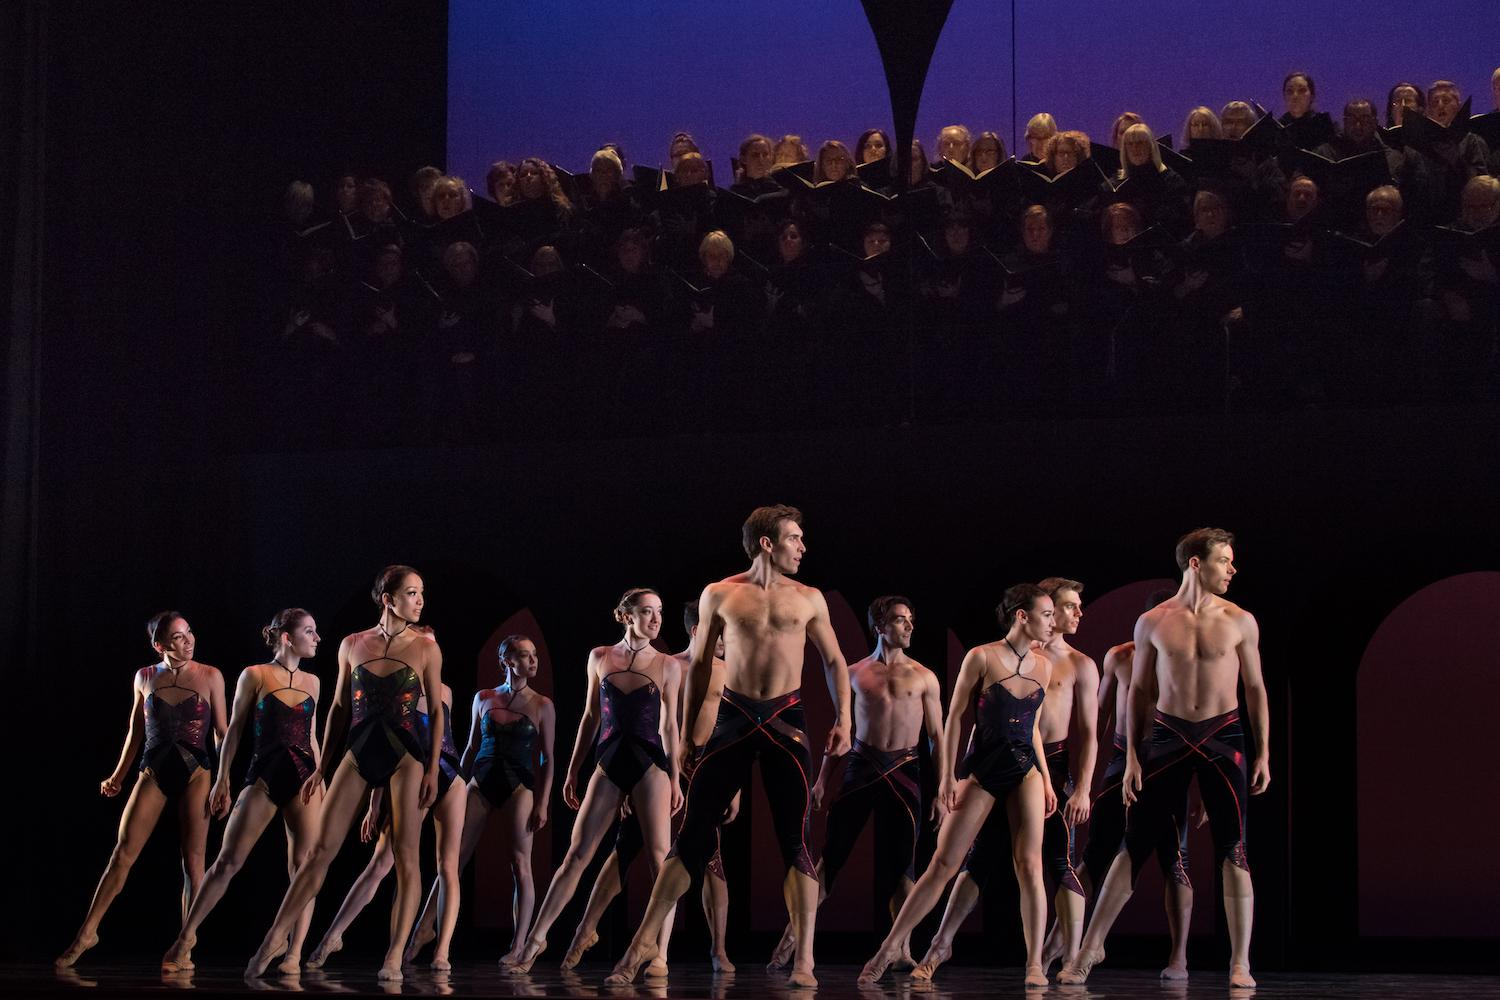 Pictured: Cincinnati Ballet dancers / Event: Carmina Burana (Feb. 8-11) / Image: Peter Mueller // Published: 3.3.18